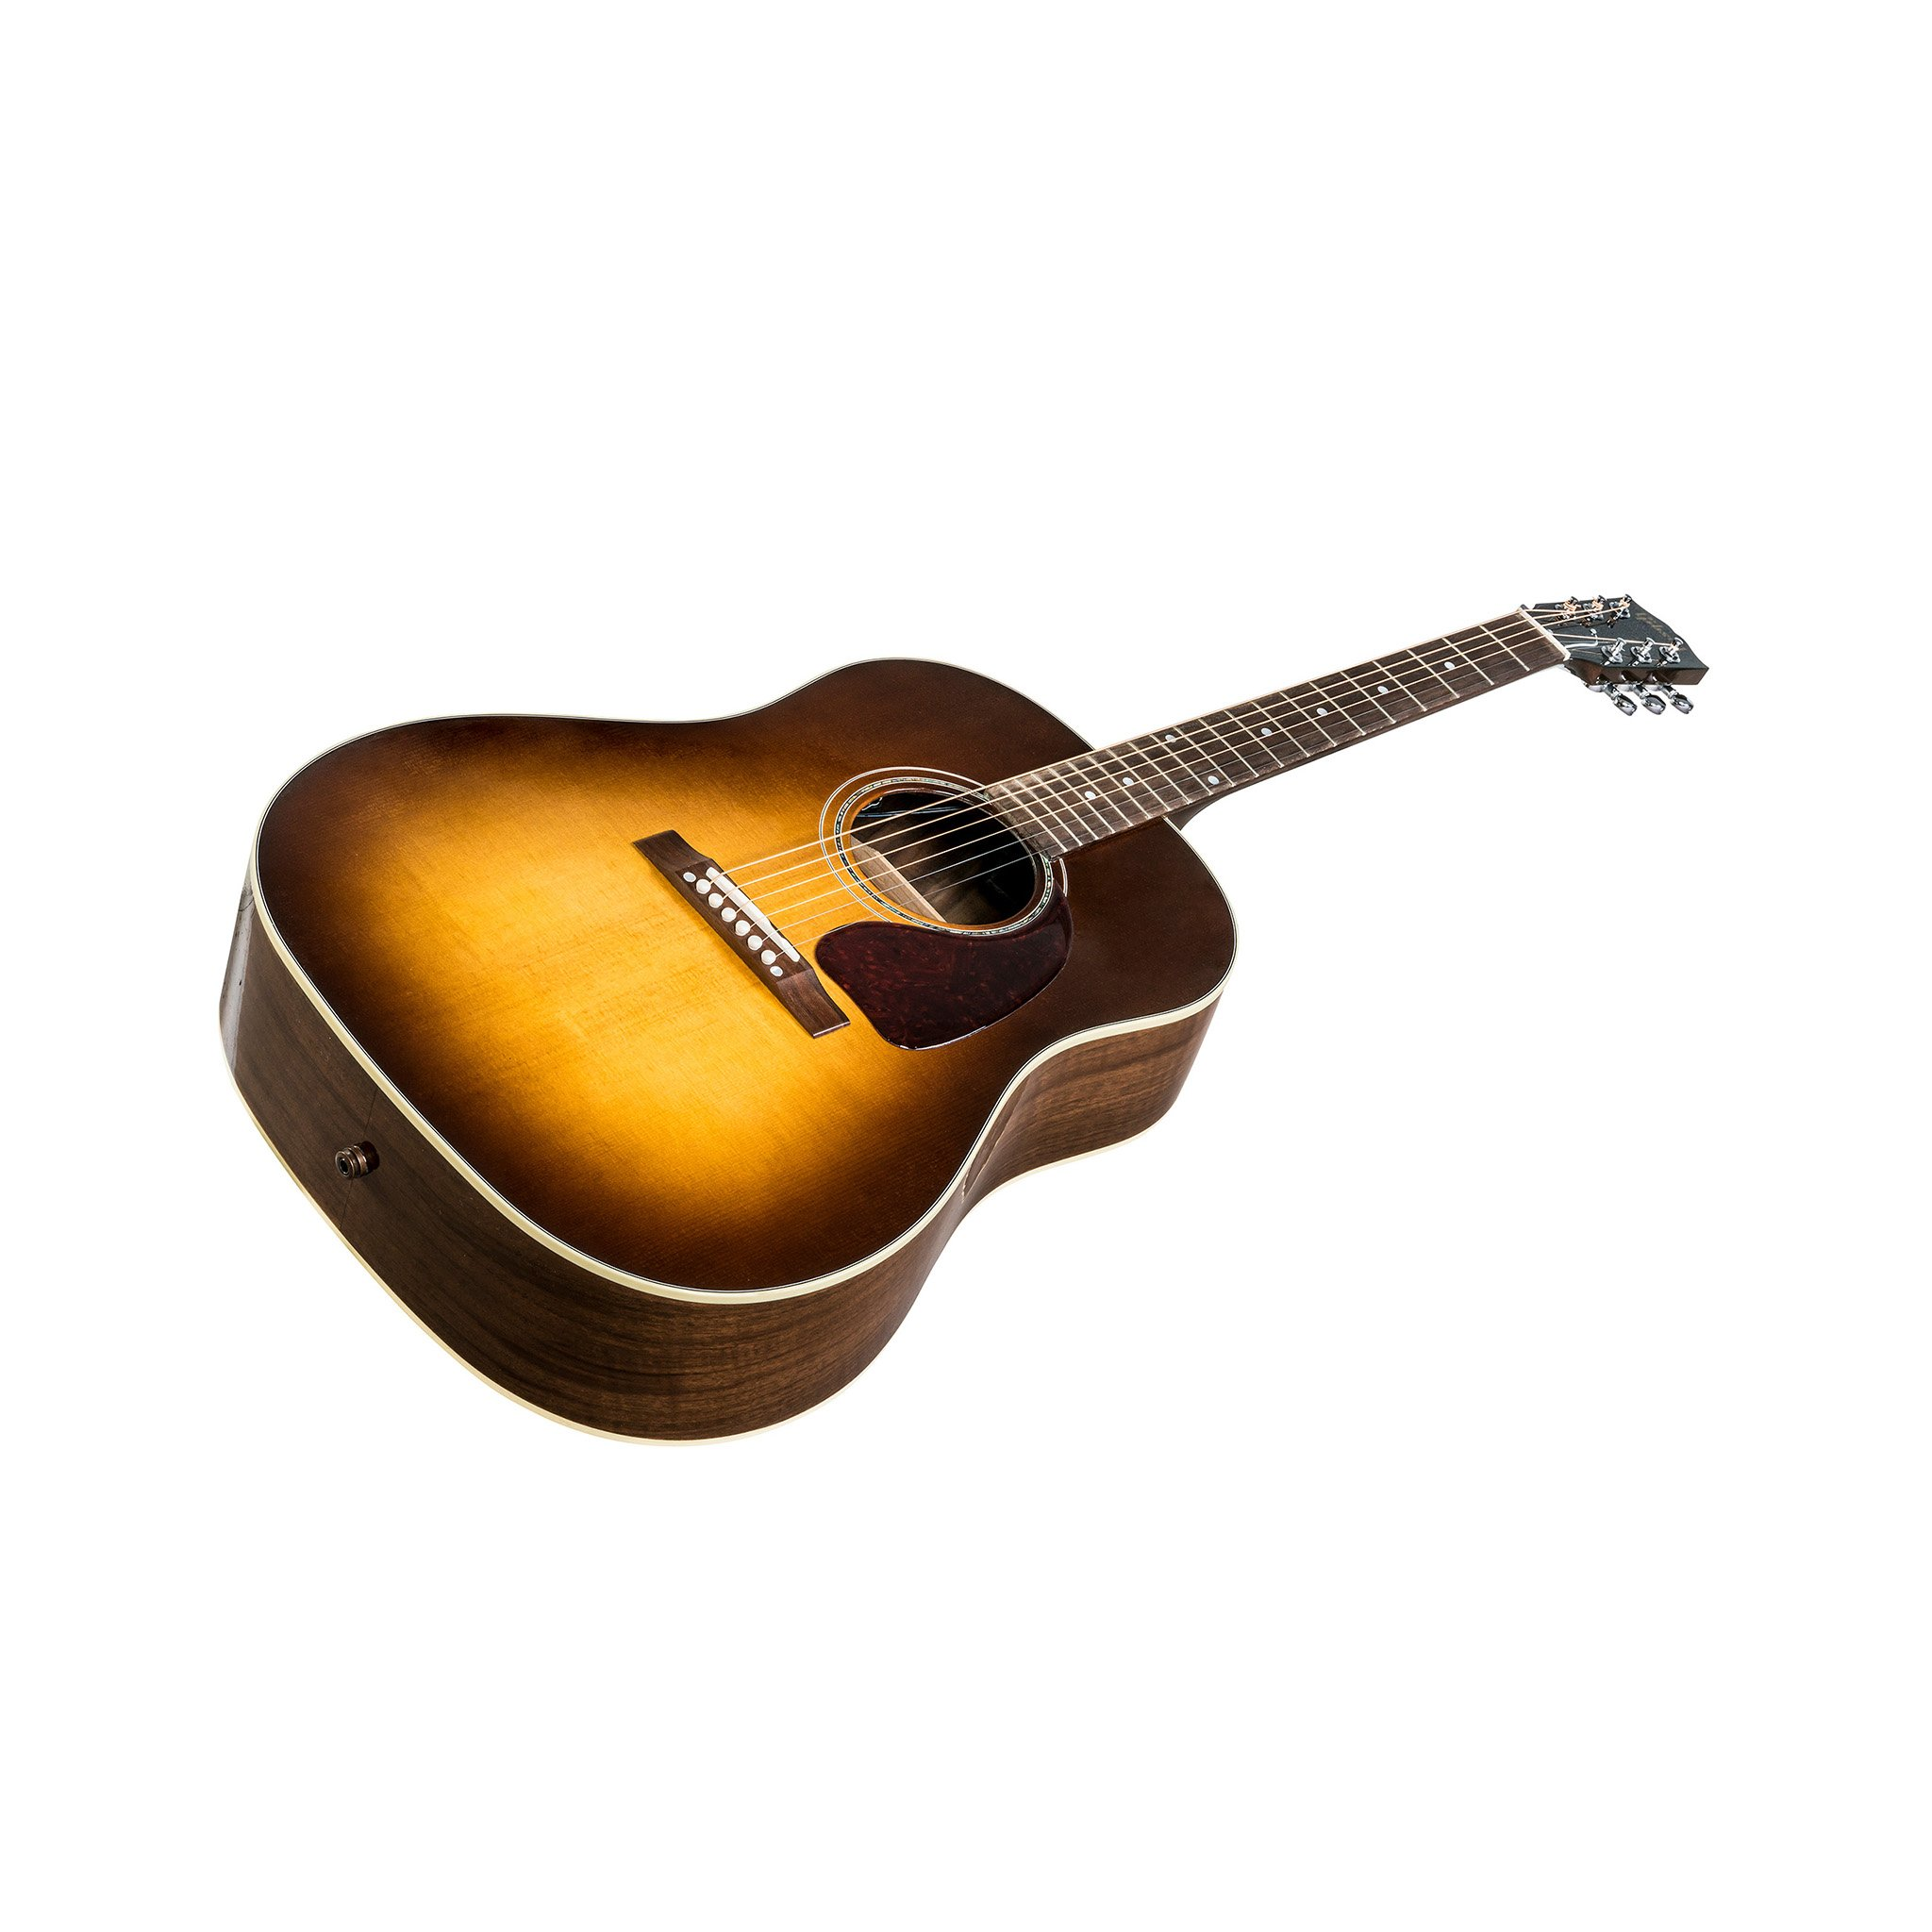 Gibson 2018 J-15 Acoustic Guitar w/Case, Walnut Burst